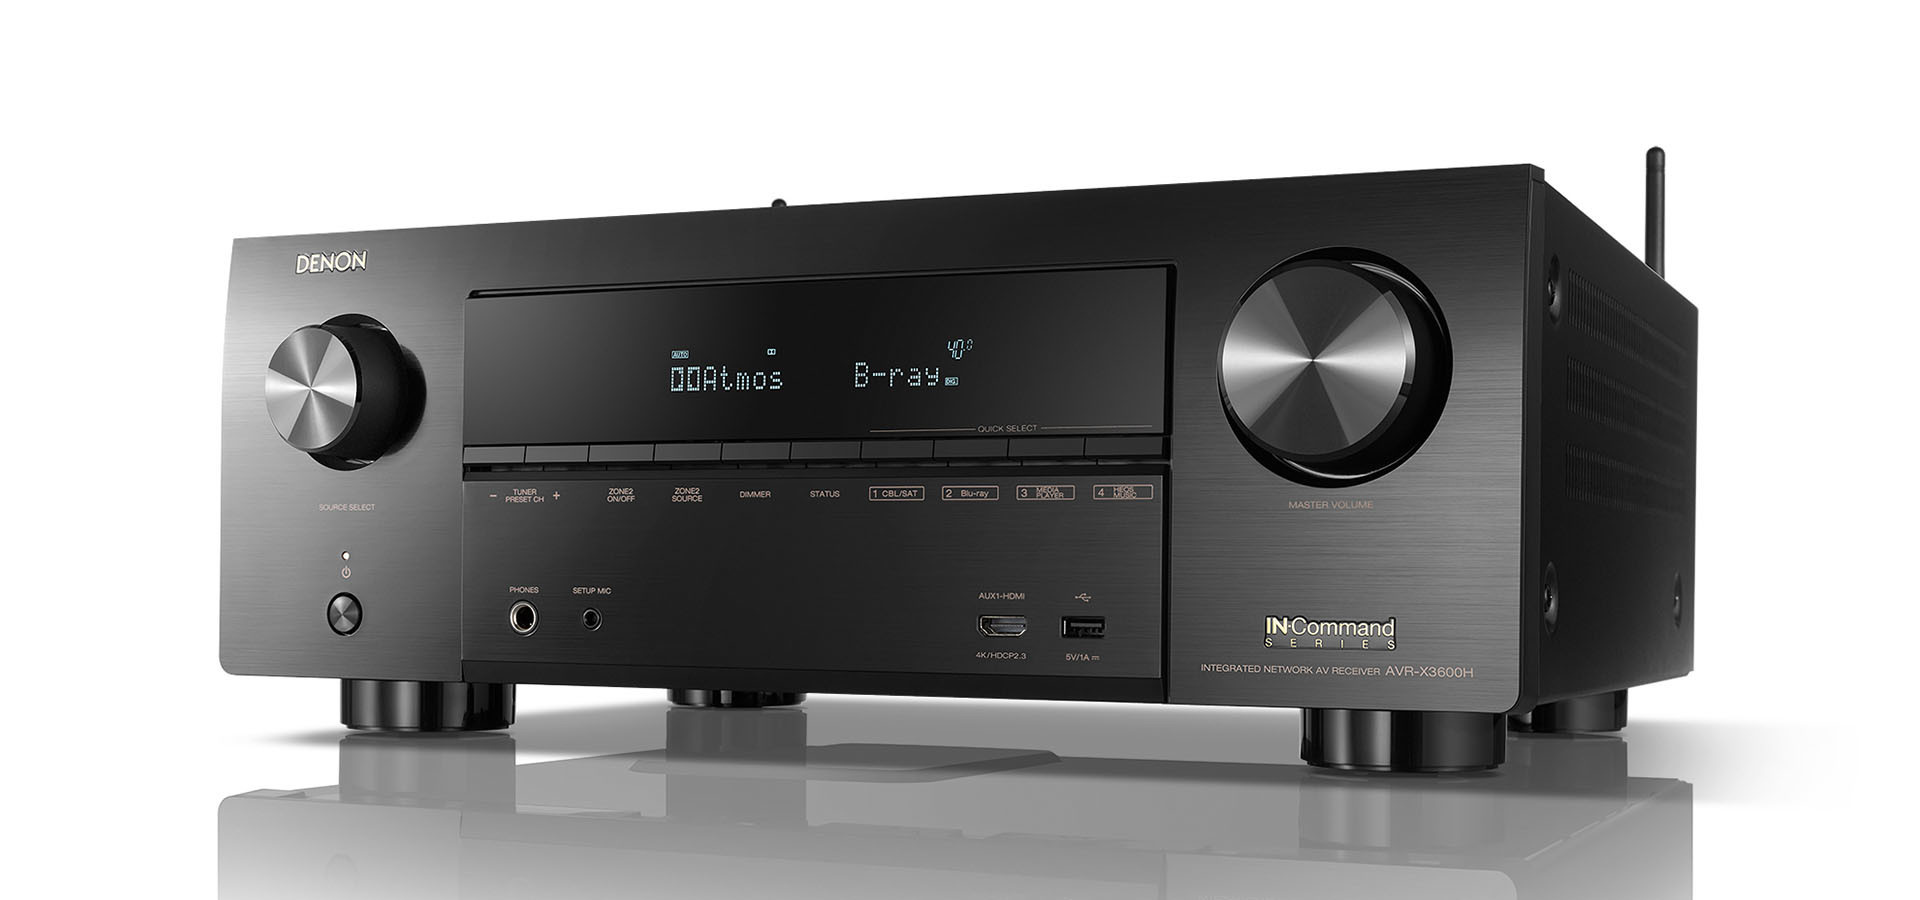 Denon Denon AVR-X3600H 9.2ch 4K AV Receiver with 3D Audio and HEOS